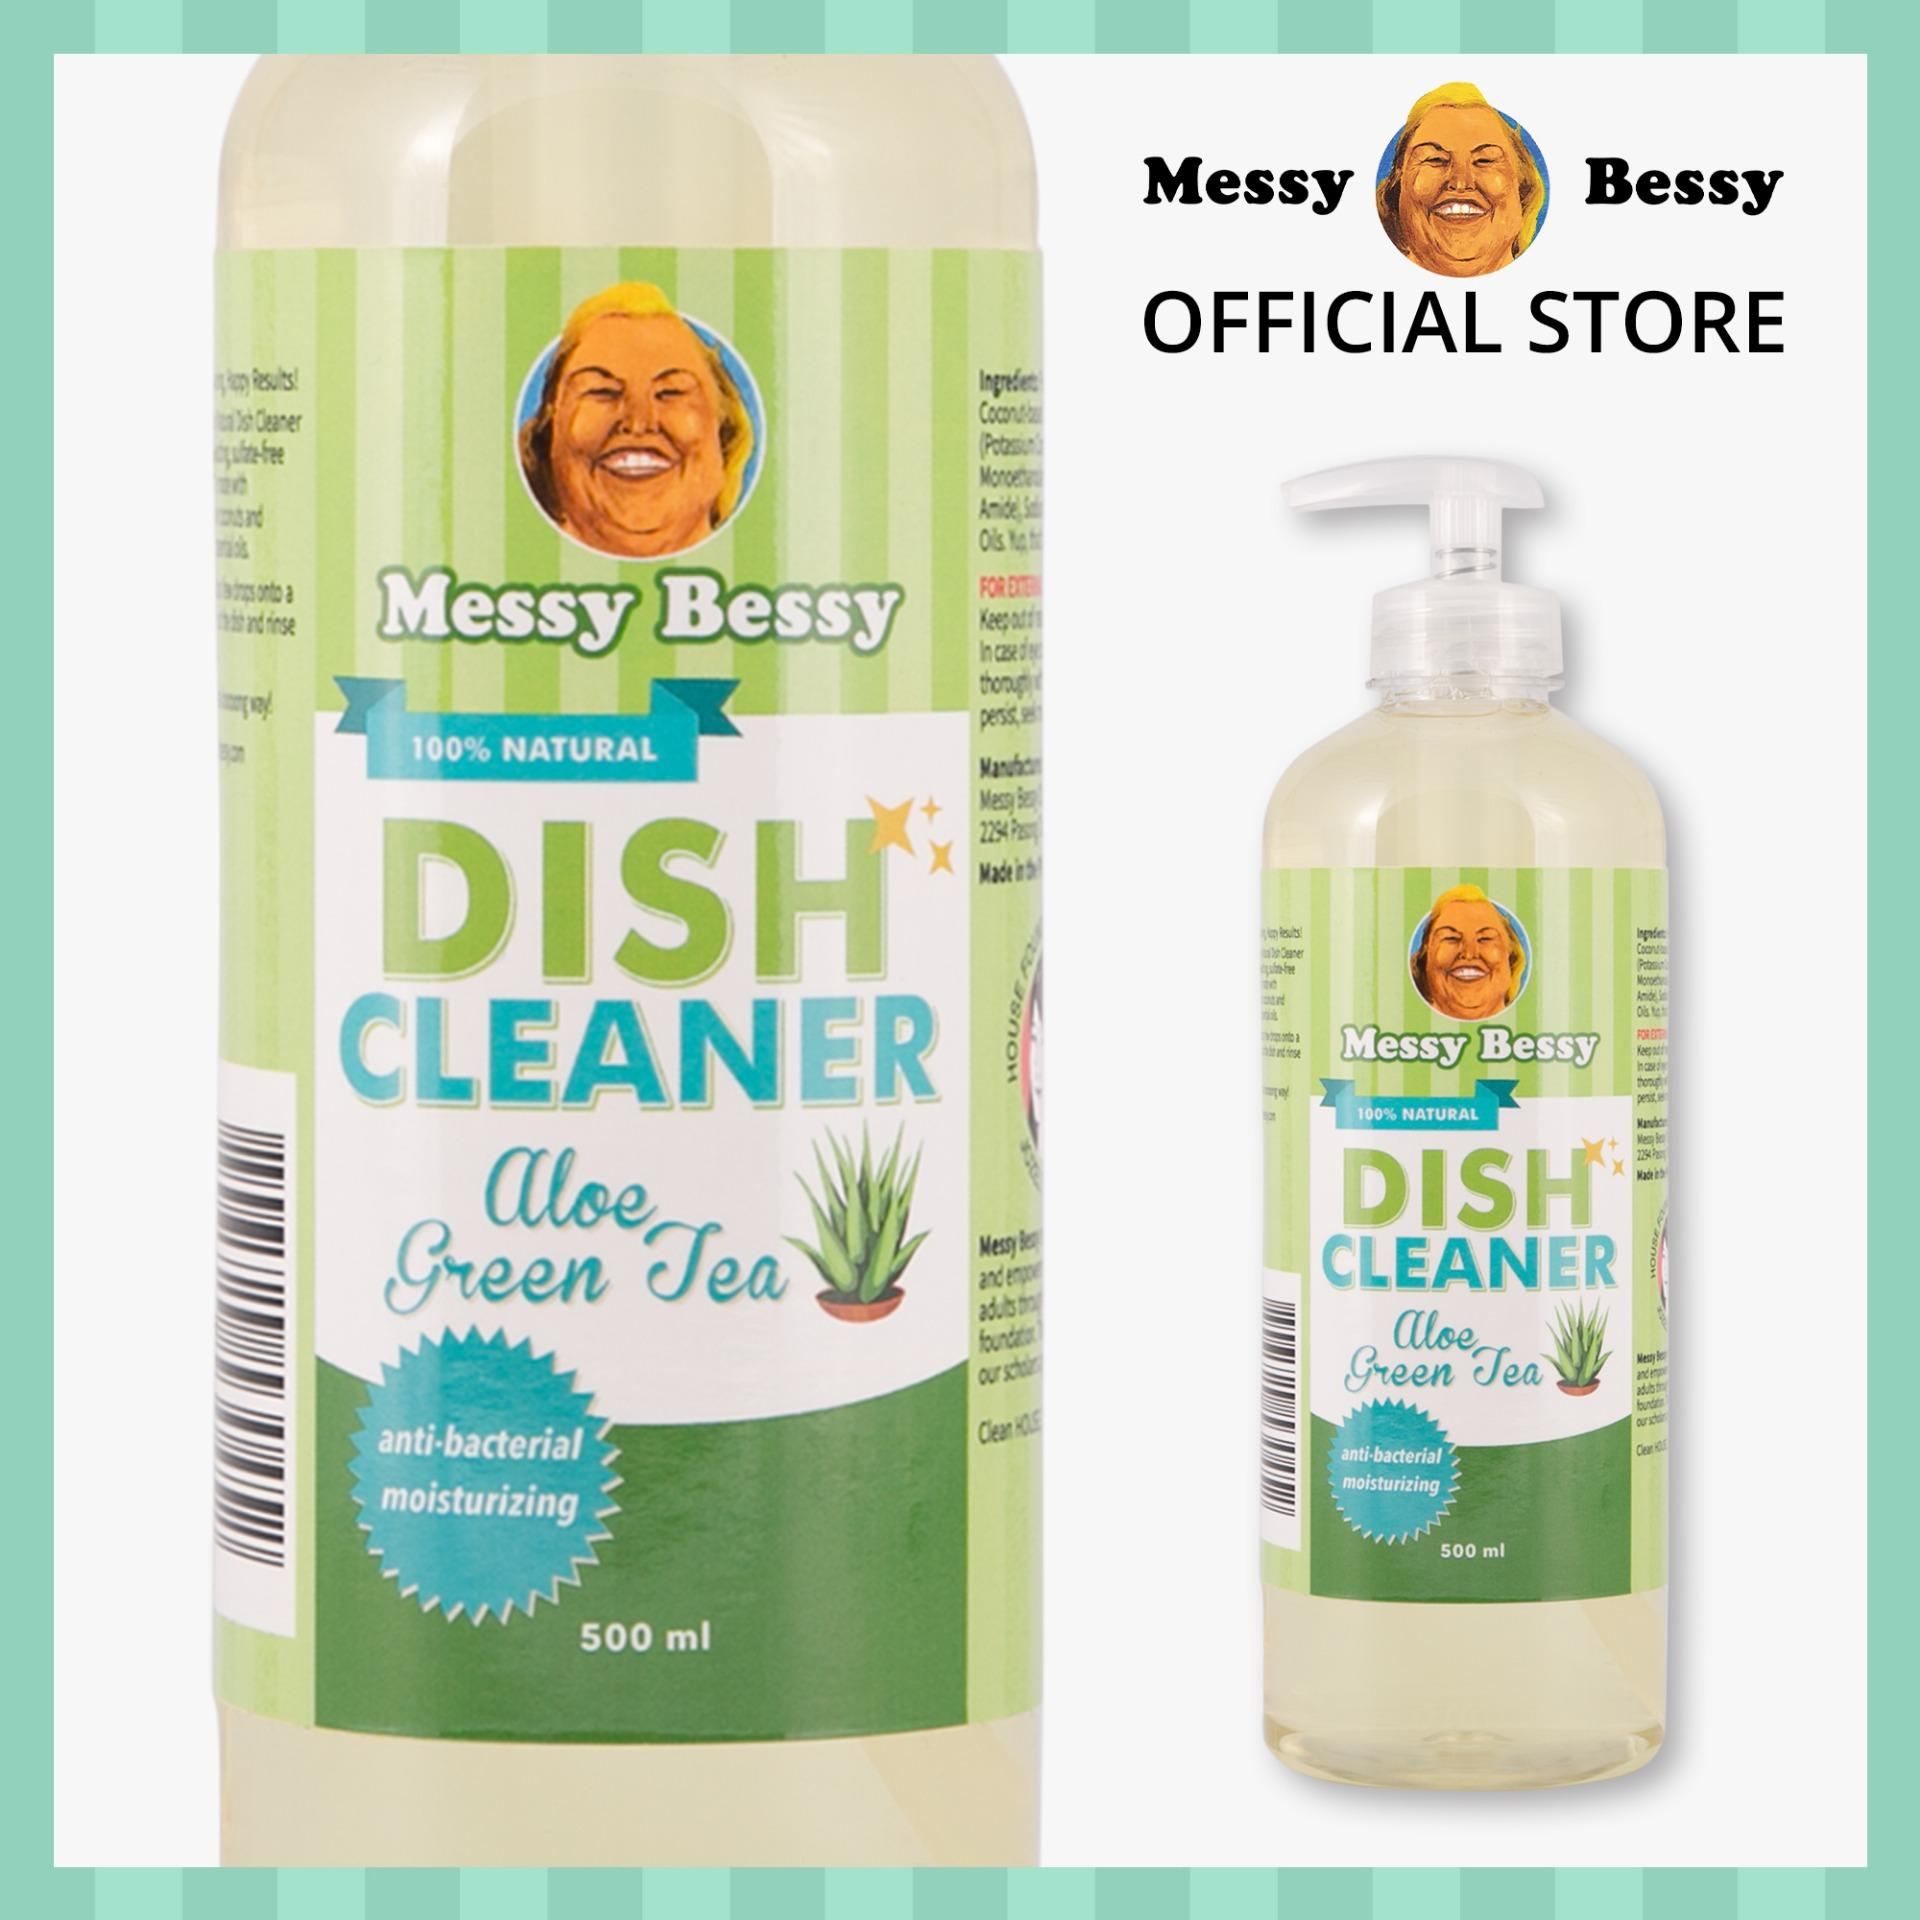 Messy Bessy Dish Cleaner Aloe Green Tea 500ml By Messy Bessy Official.